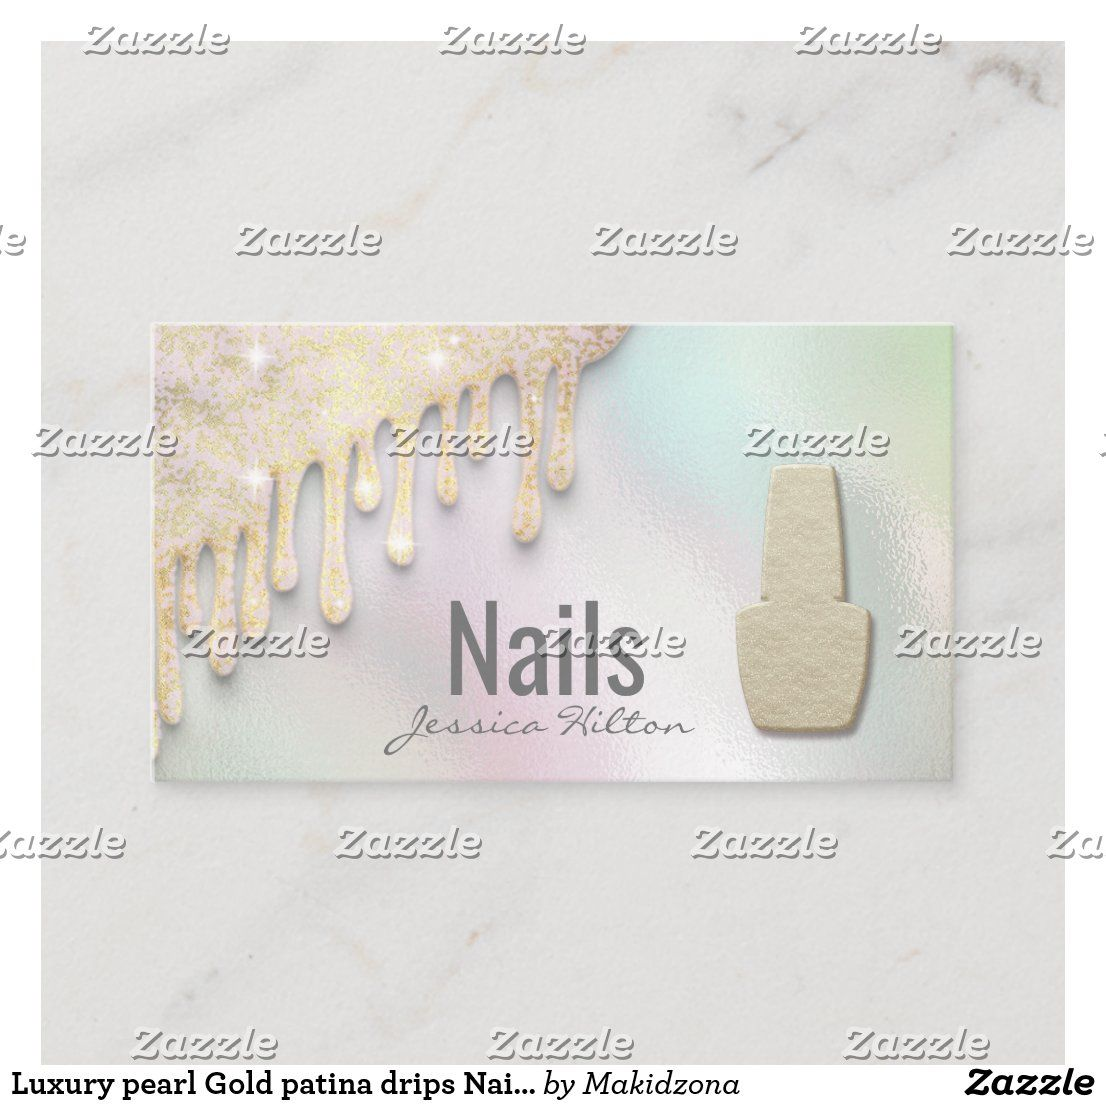 Luxury pearl Gold patina drips Nail salon Business Card